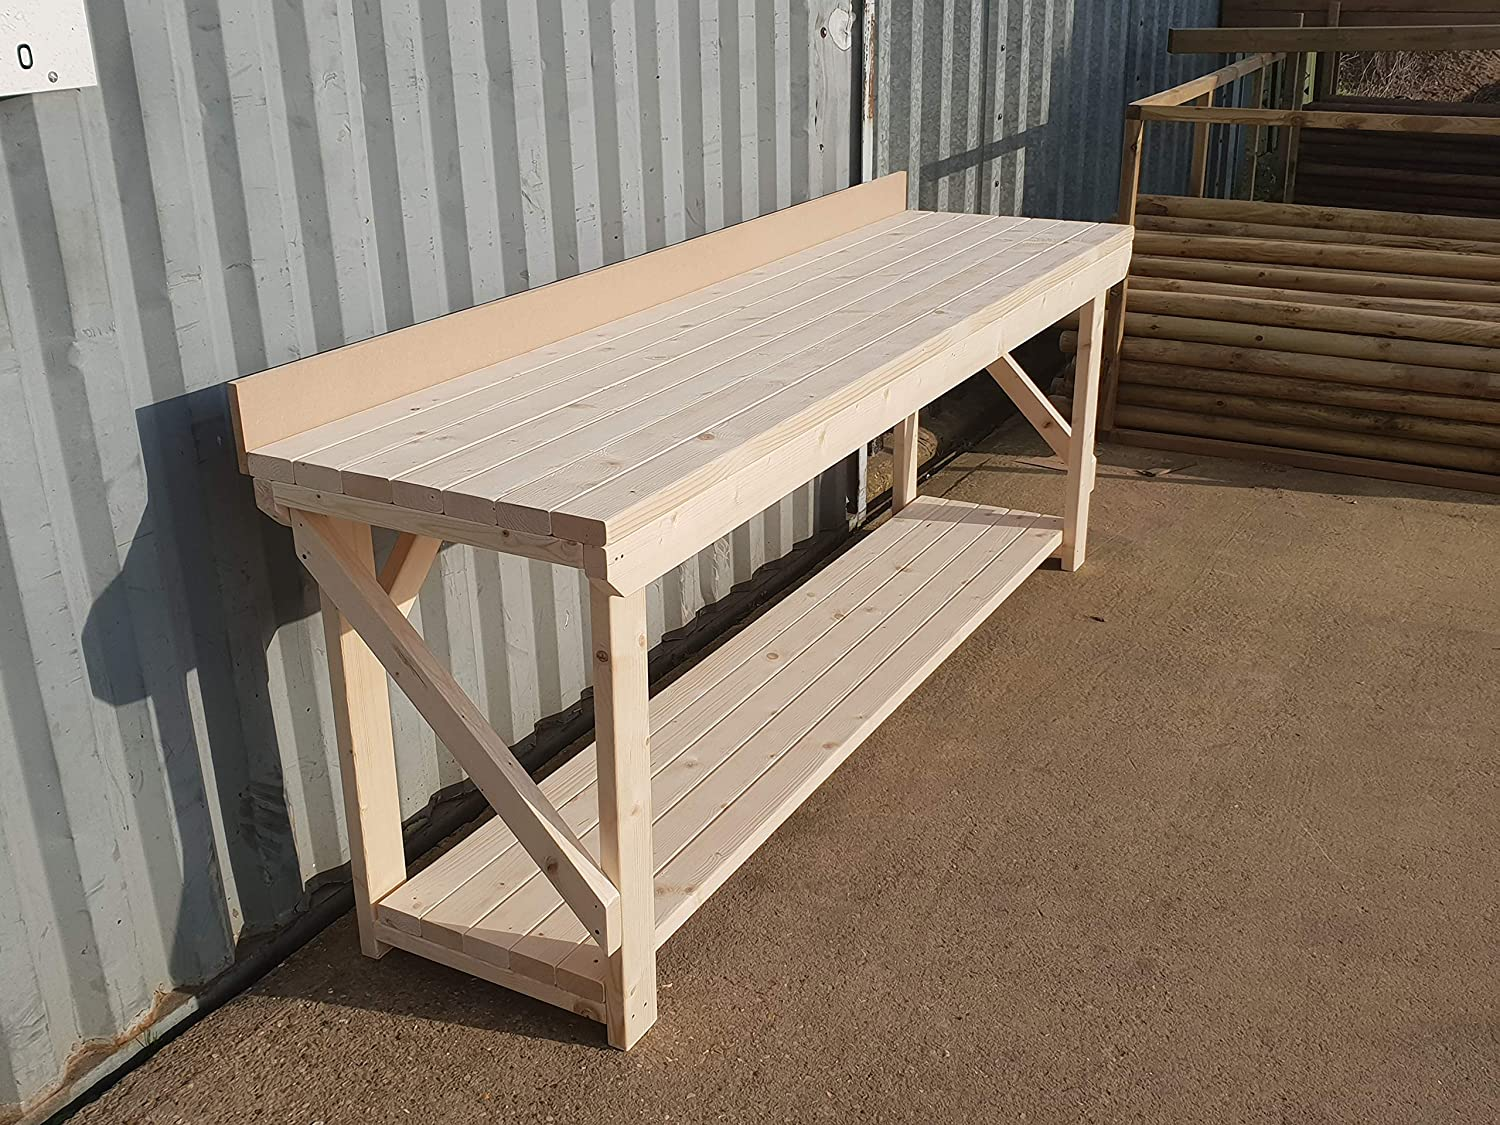 4ft Work Table Hand Made Strong Heavy Duty Wooden WorkBench Acorn-Premium With Rear MDF Upstand Made From Construction Grade Timber 4FT TO 8FT